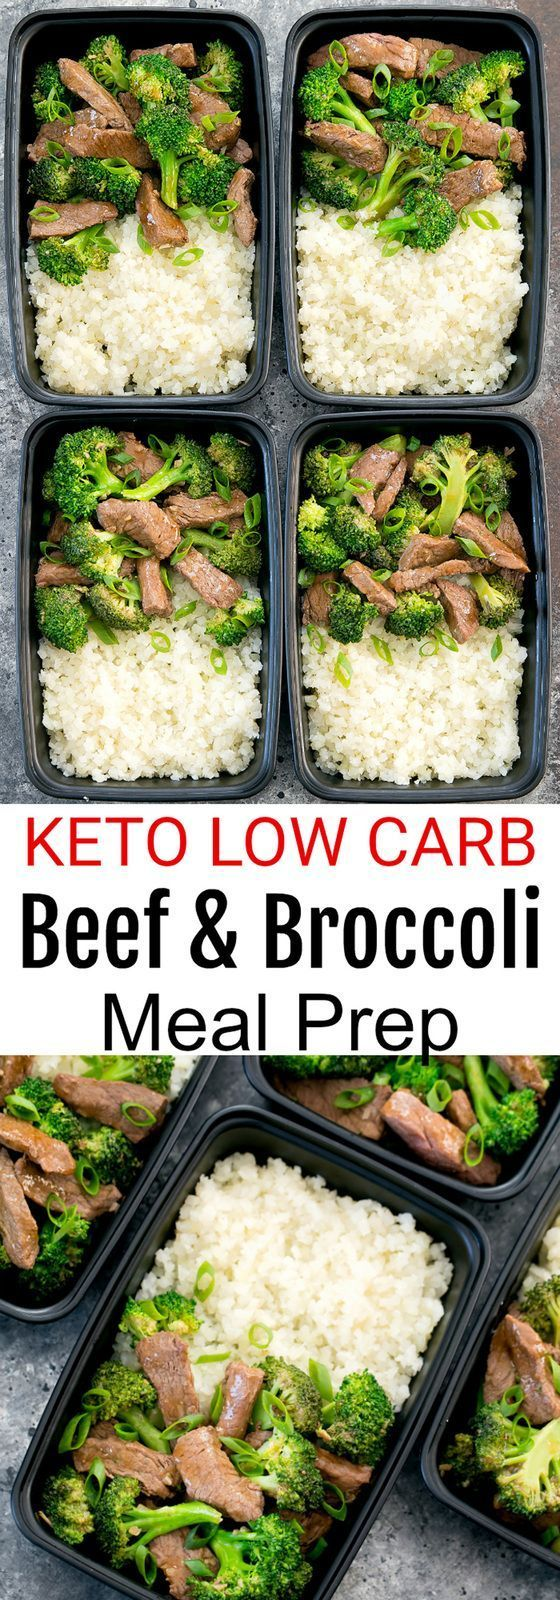 Beef and Broccoli Meal Prep #mealprepplans